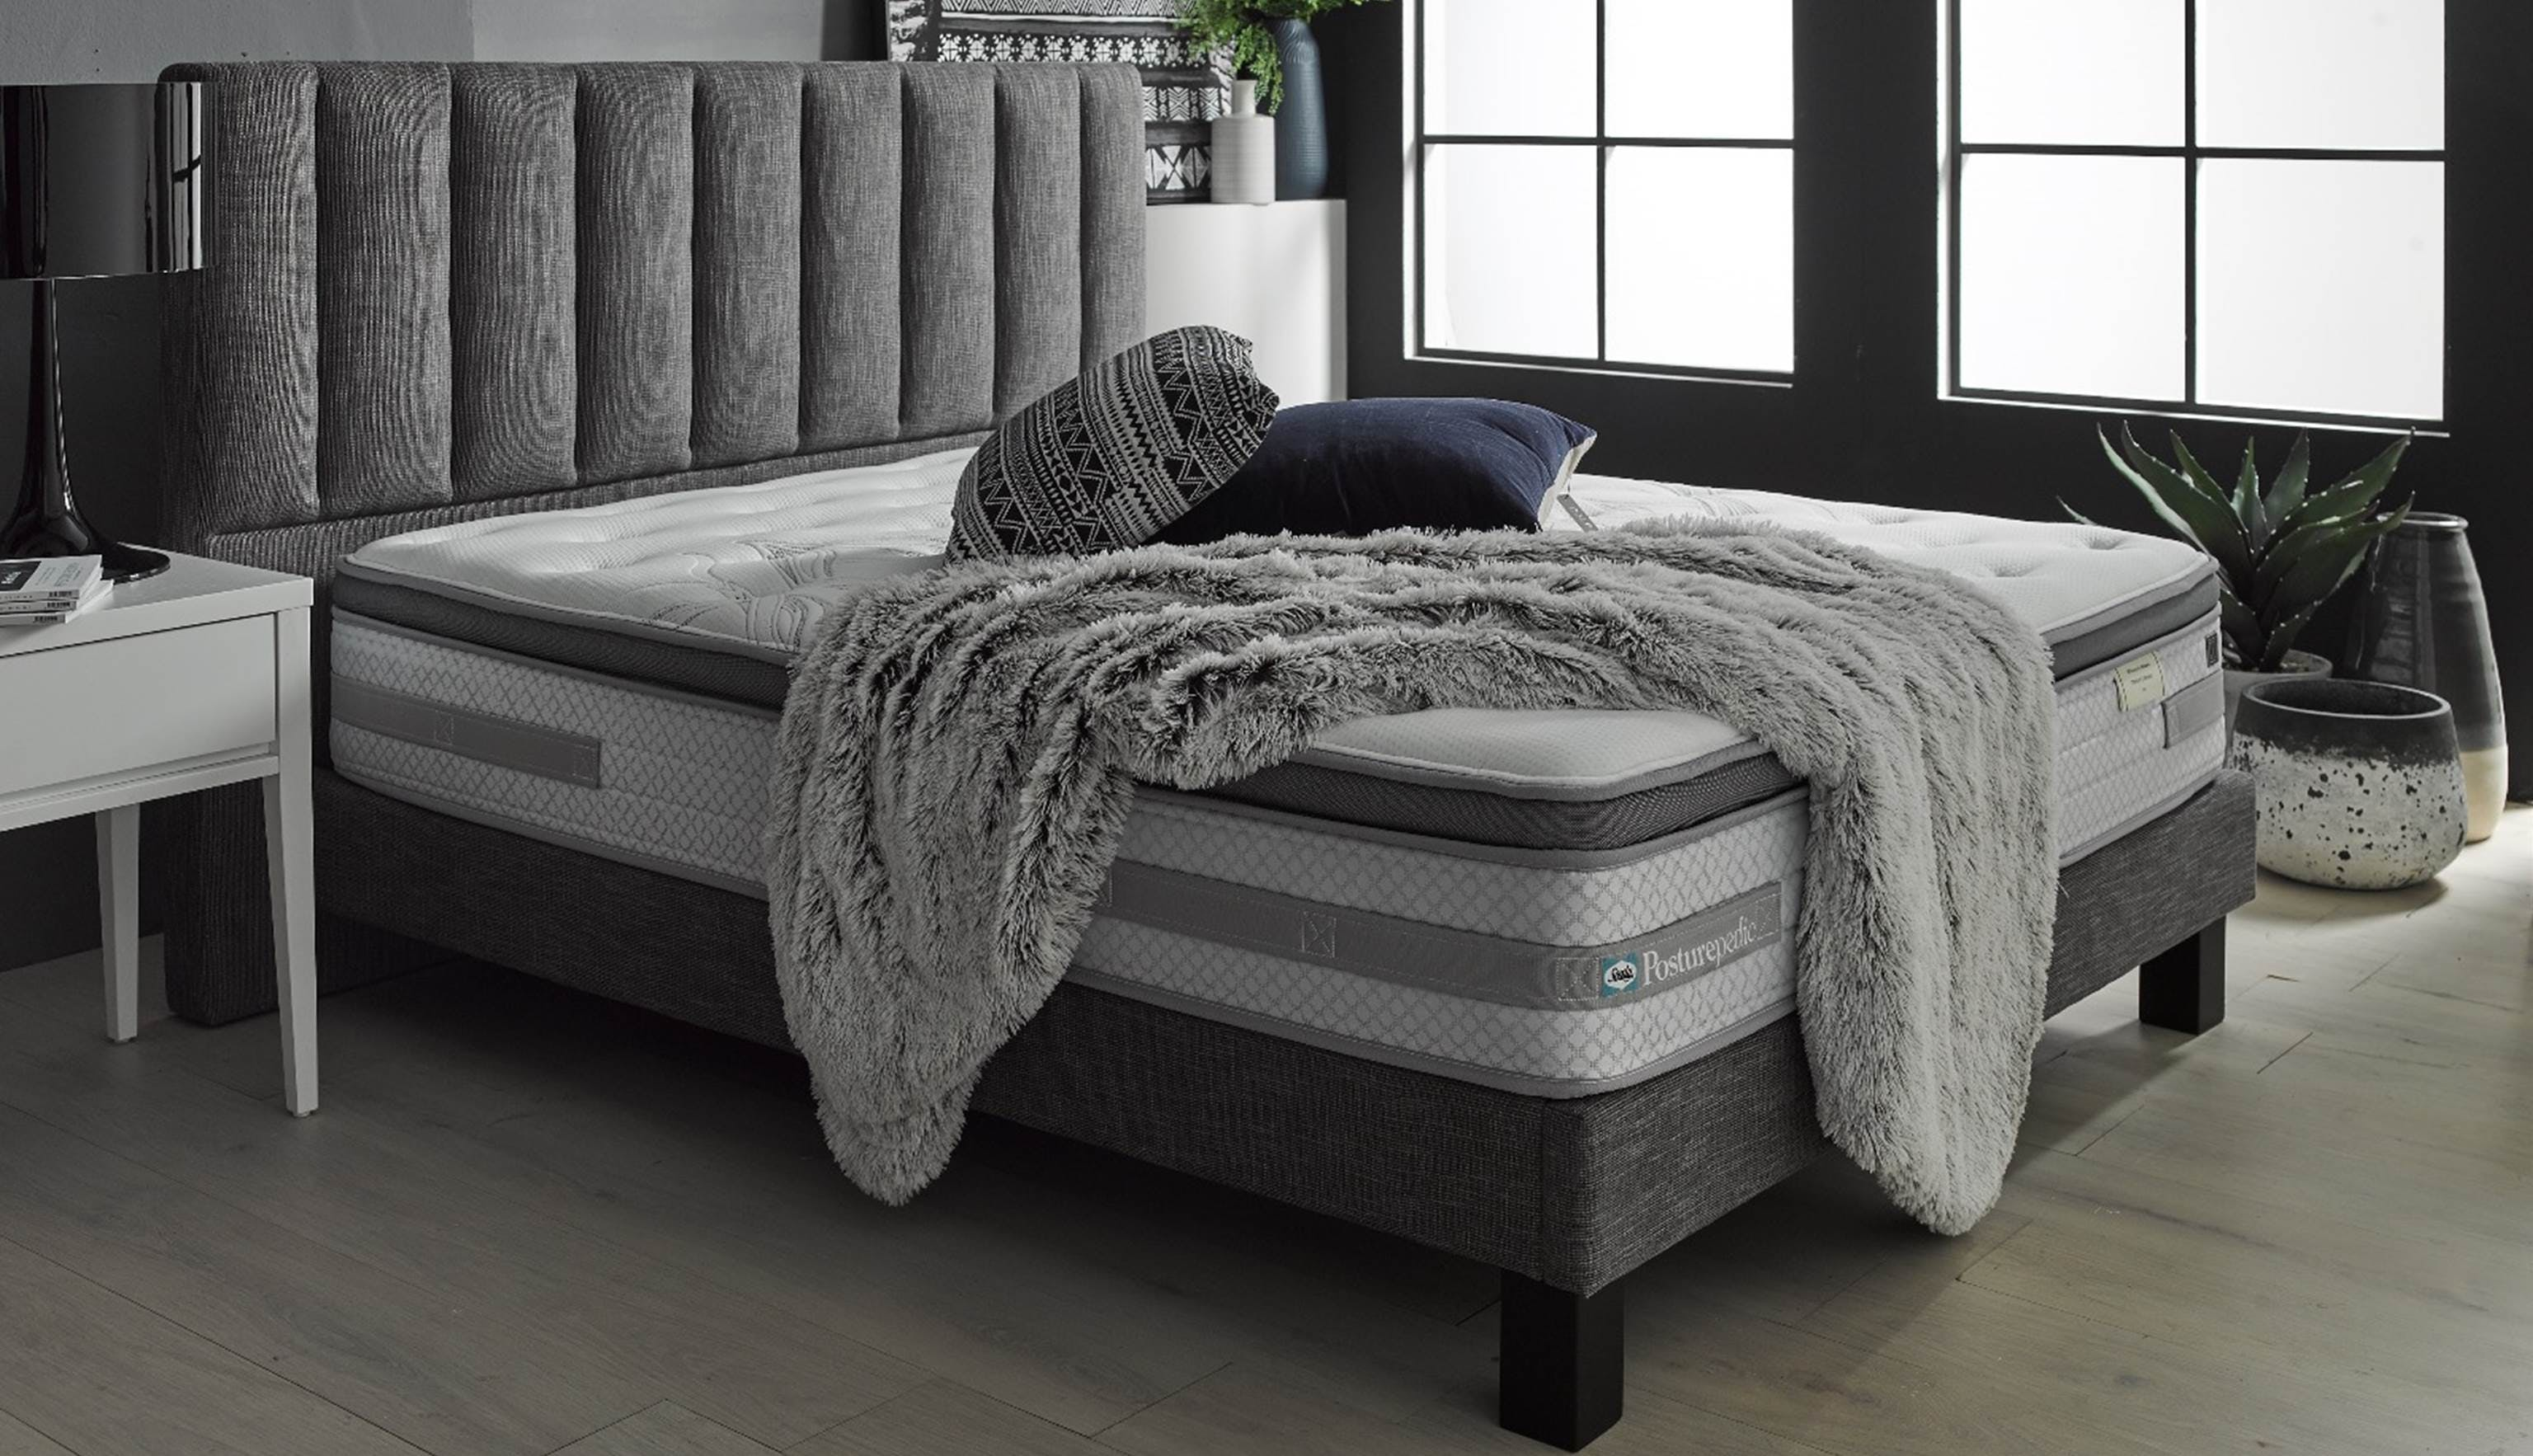 Sealy Posturepedic Anium Firm Mattress Queen Size Harvey Norman Singapore